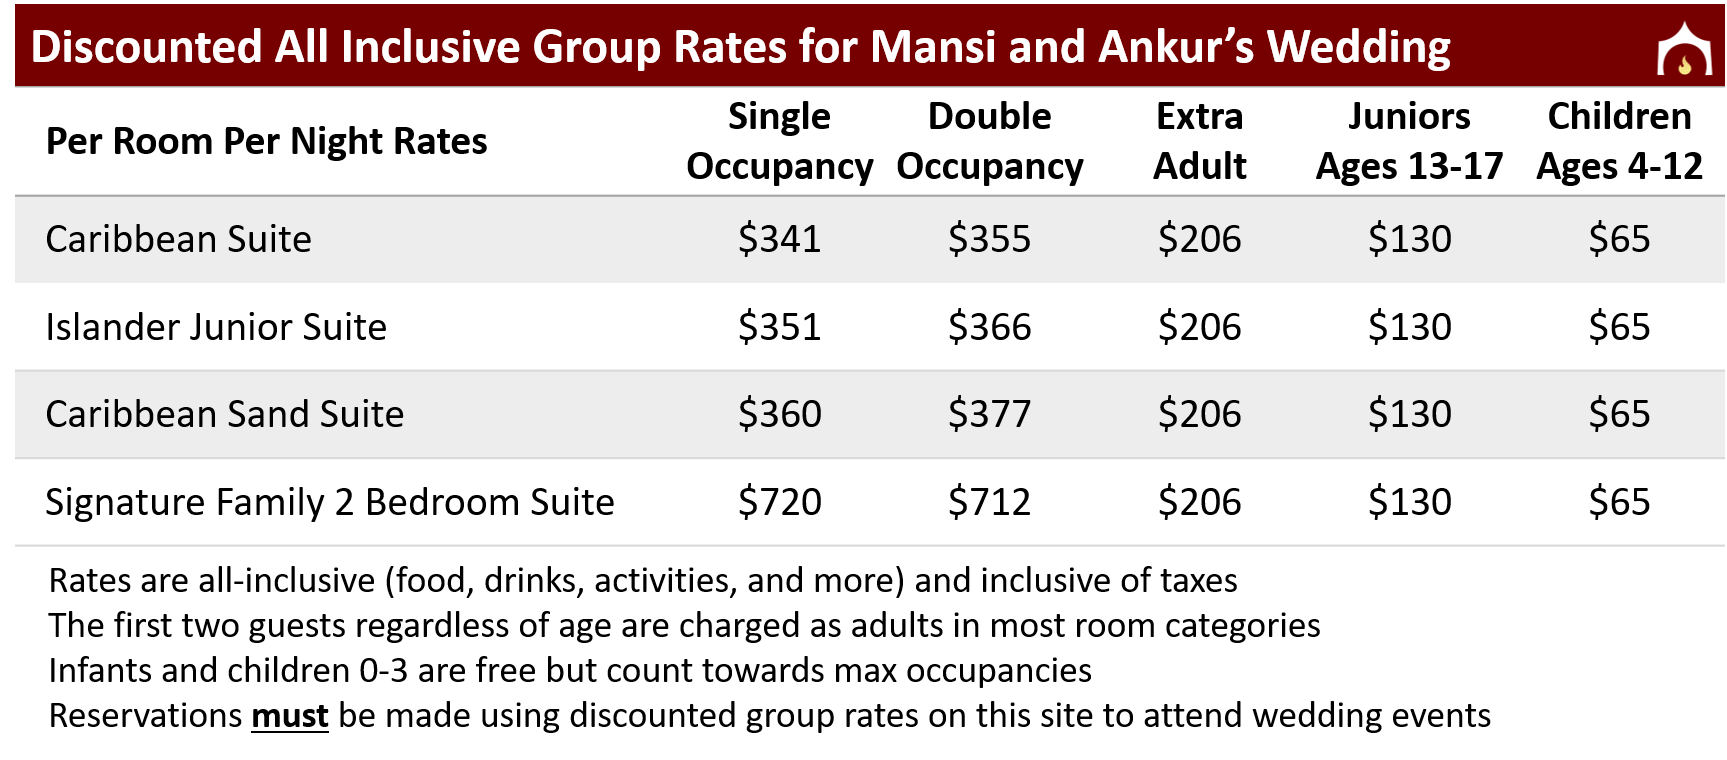 Discounted Group Rates for Mansi and Ankur v3.png